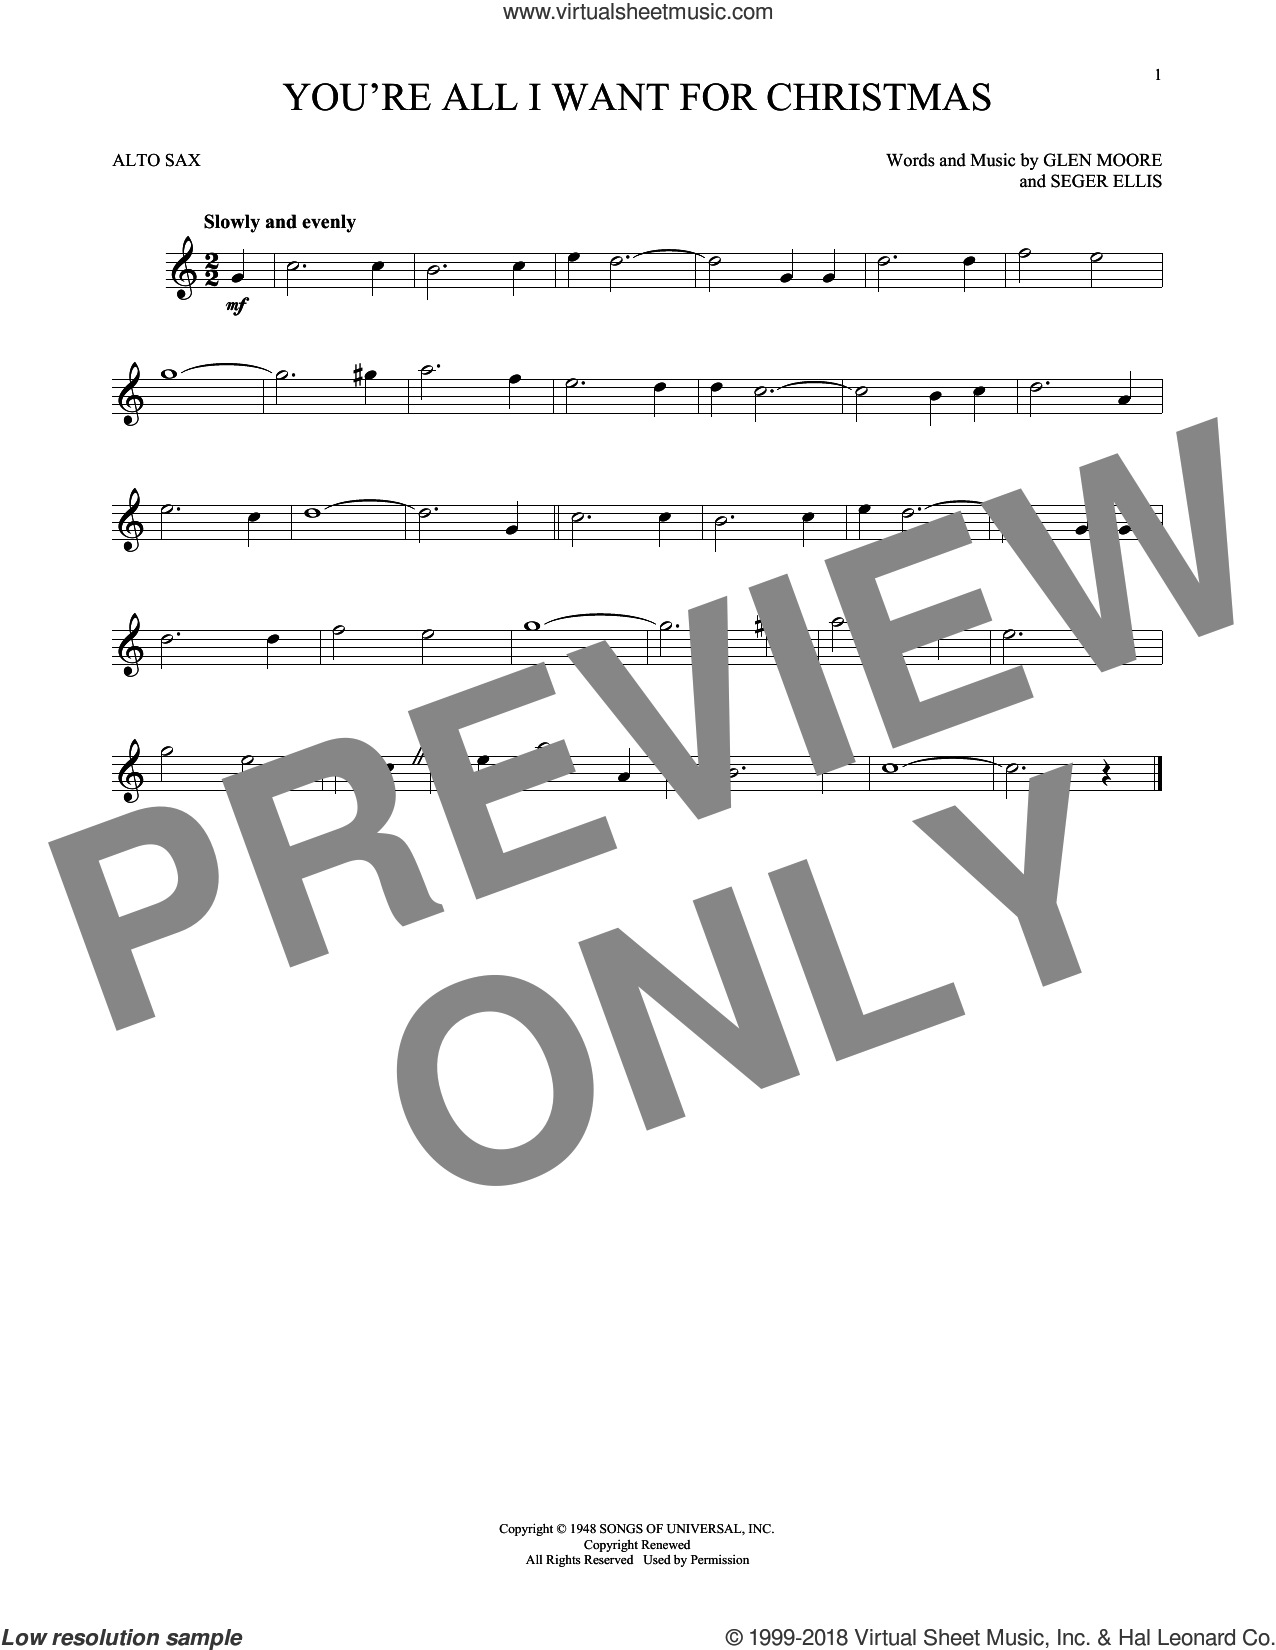 You're All I Want For Christmas sheet music for alto saxophone solo by Seger Ellis